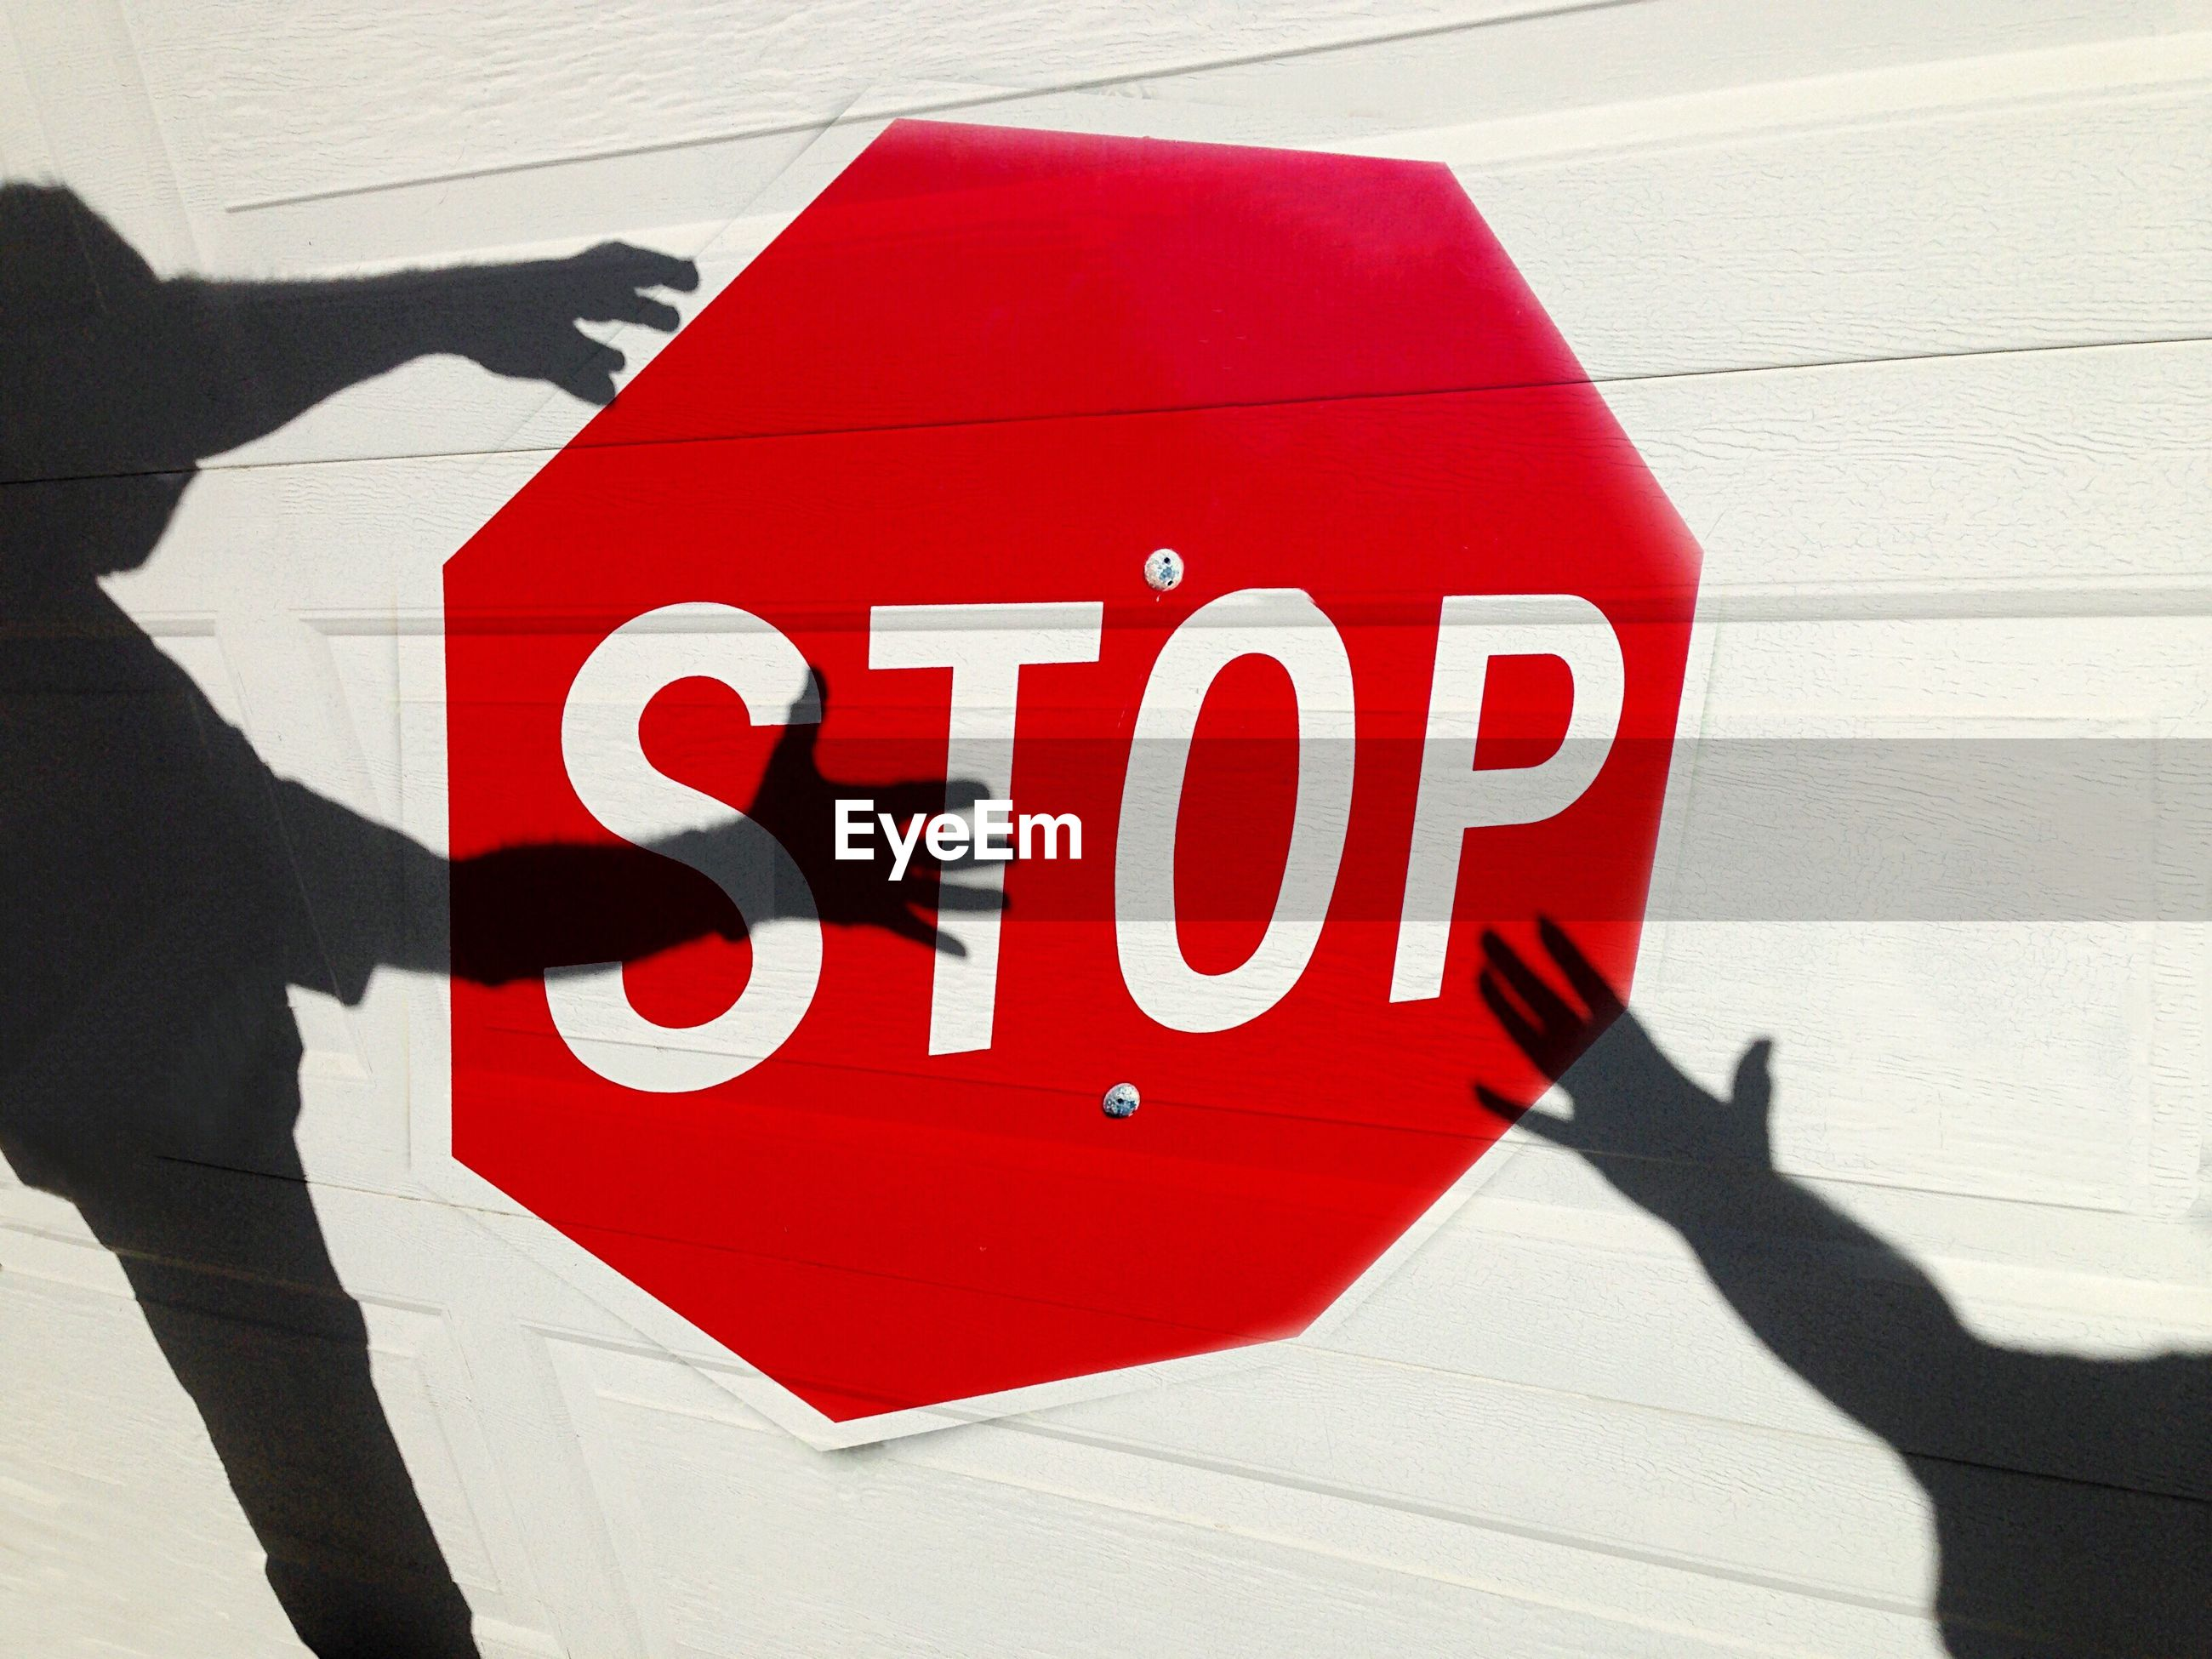 Optical illusion of shadows holding stop sign painted on white wall